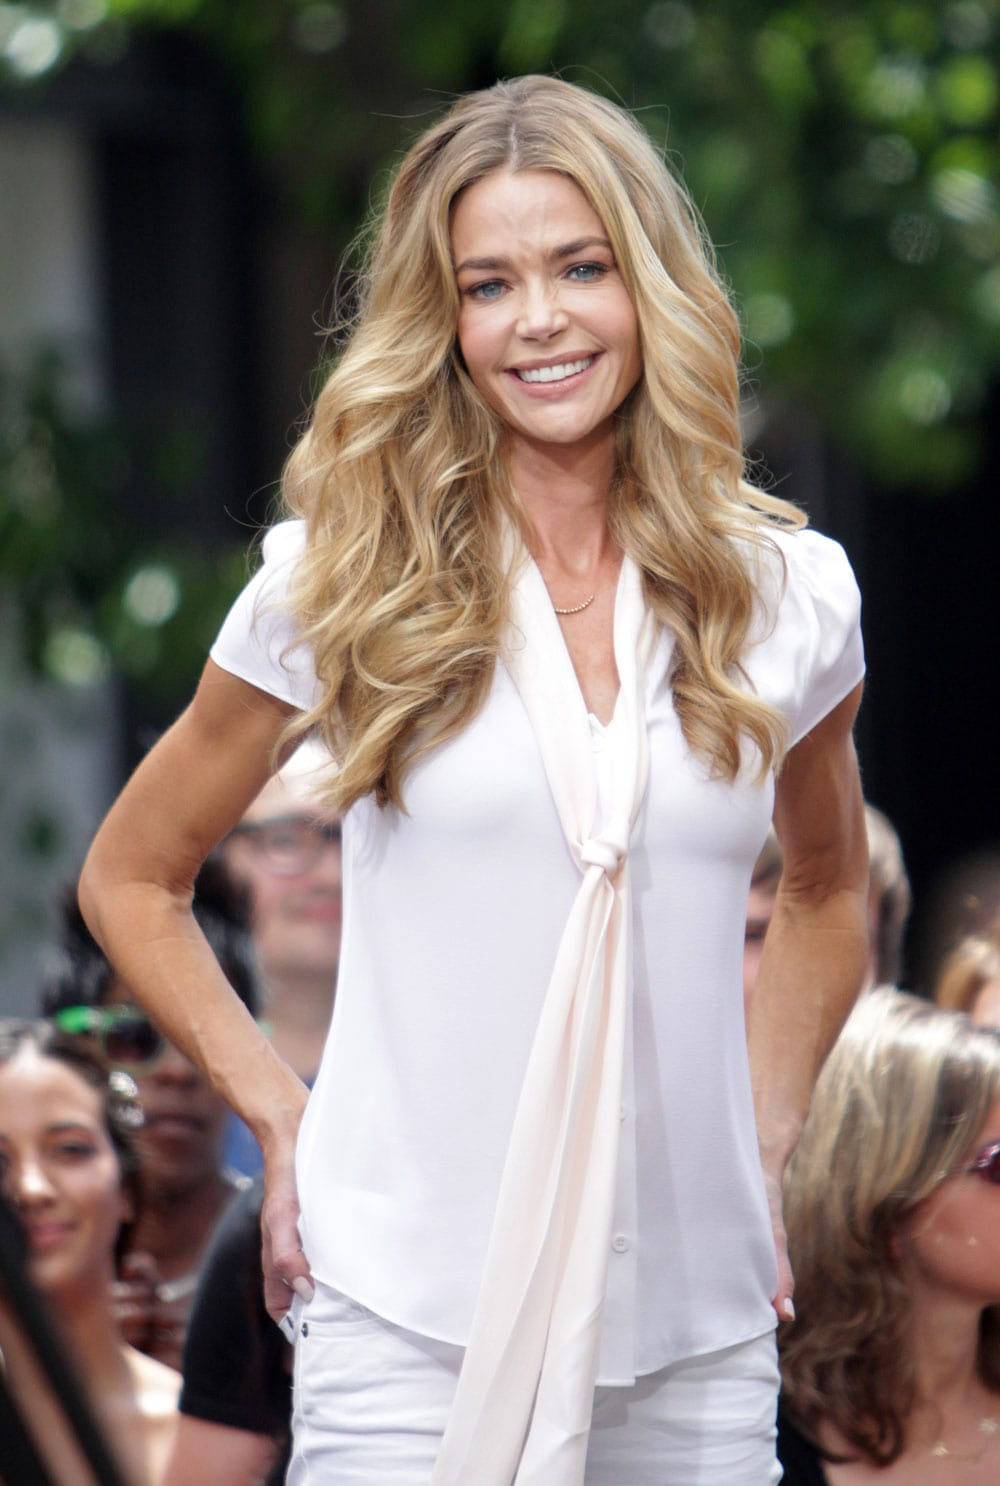 denise richards blonde hair